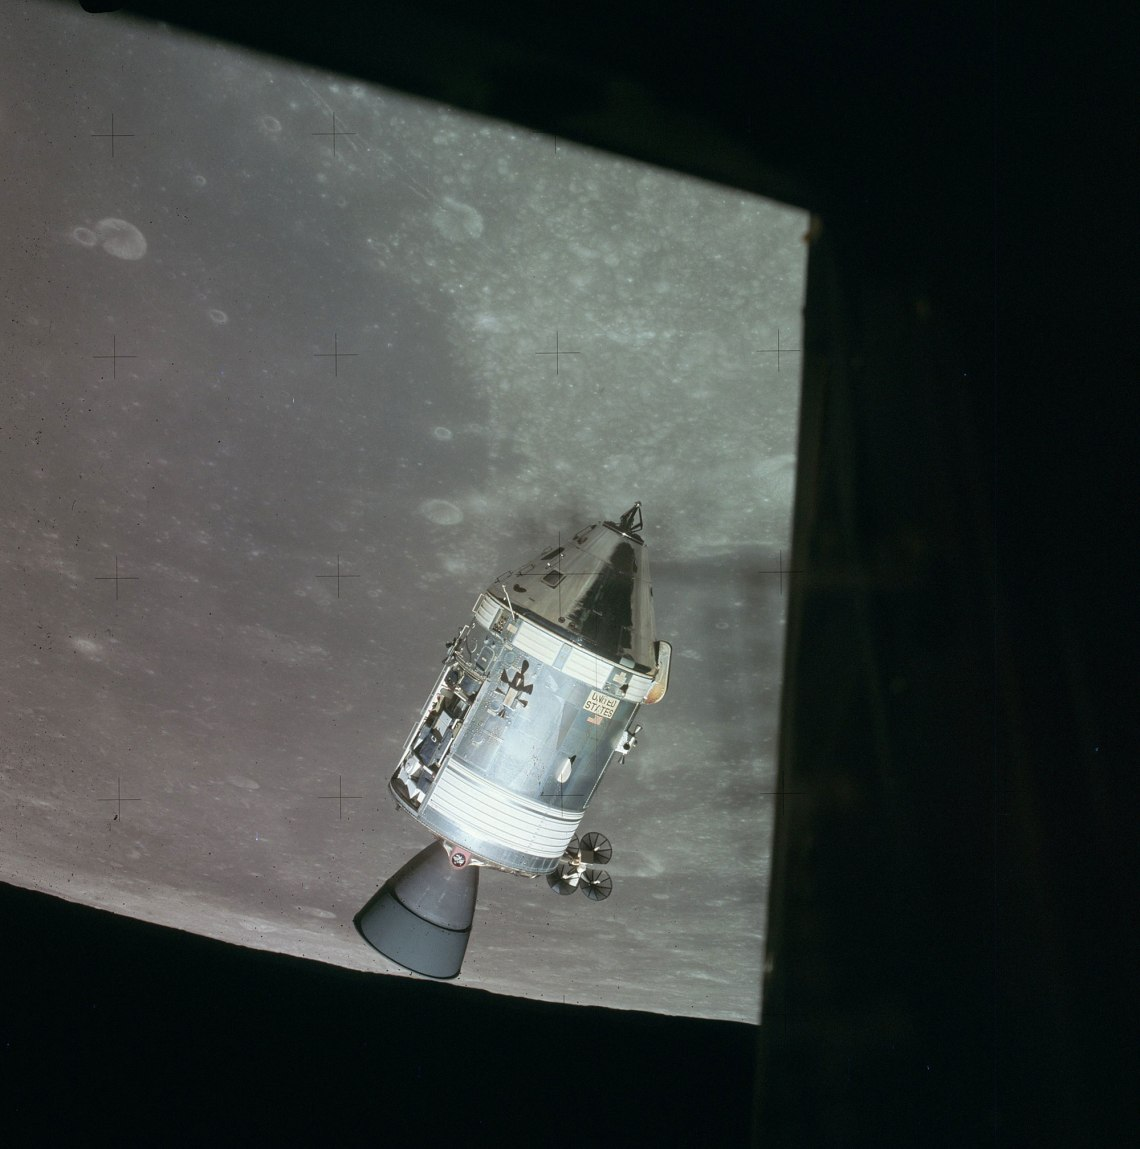 The Apollo 15 spacecraft was modified to carry out a greater range of lunar orbital science activities than any previous mission. Credit: NASA